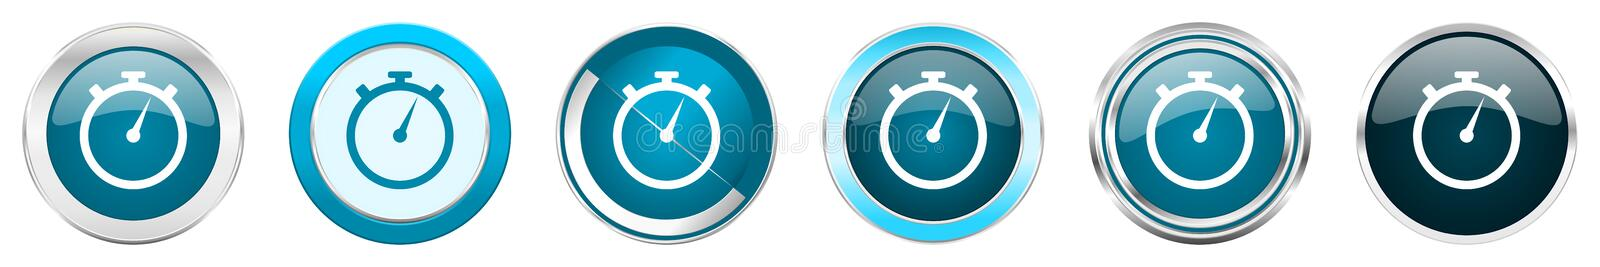 Stopwatch silver metallic chrome border icons in 6 options, set of web blue round buttons isolated on white background vector illustration